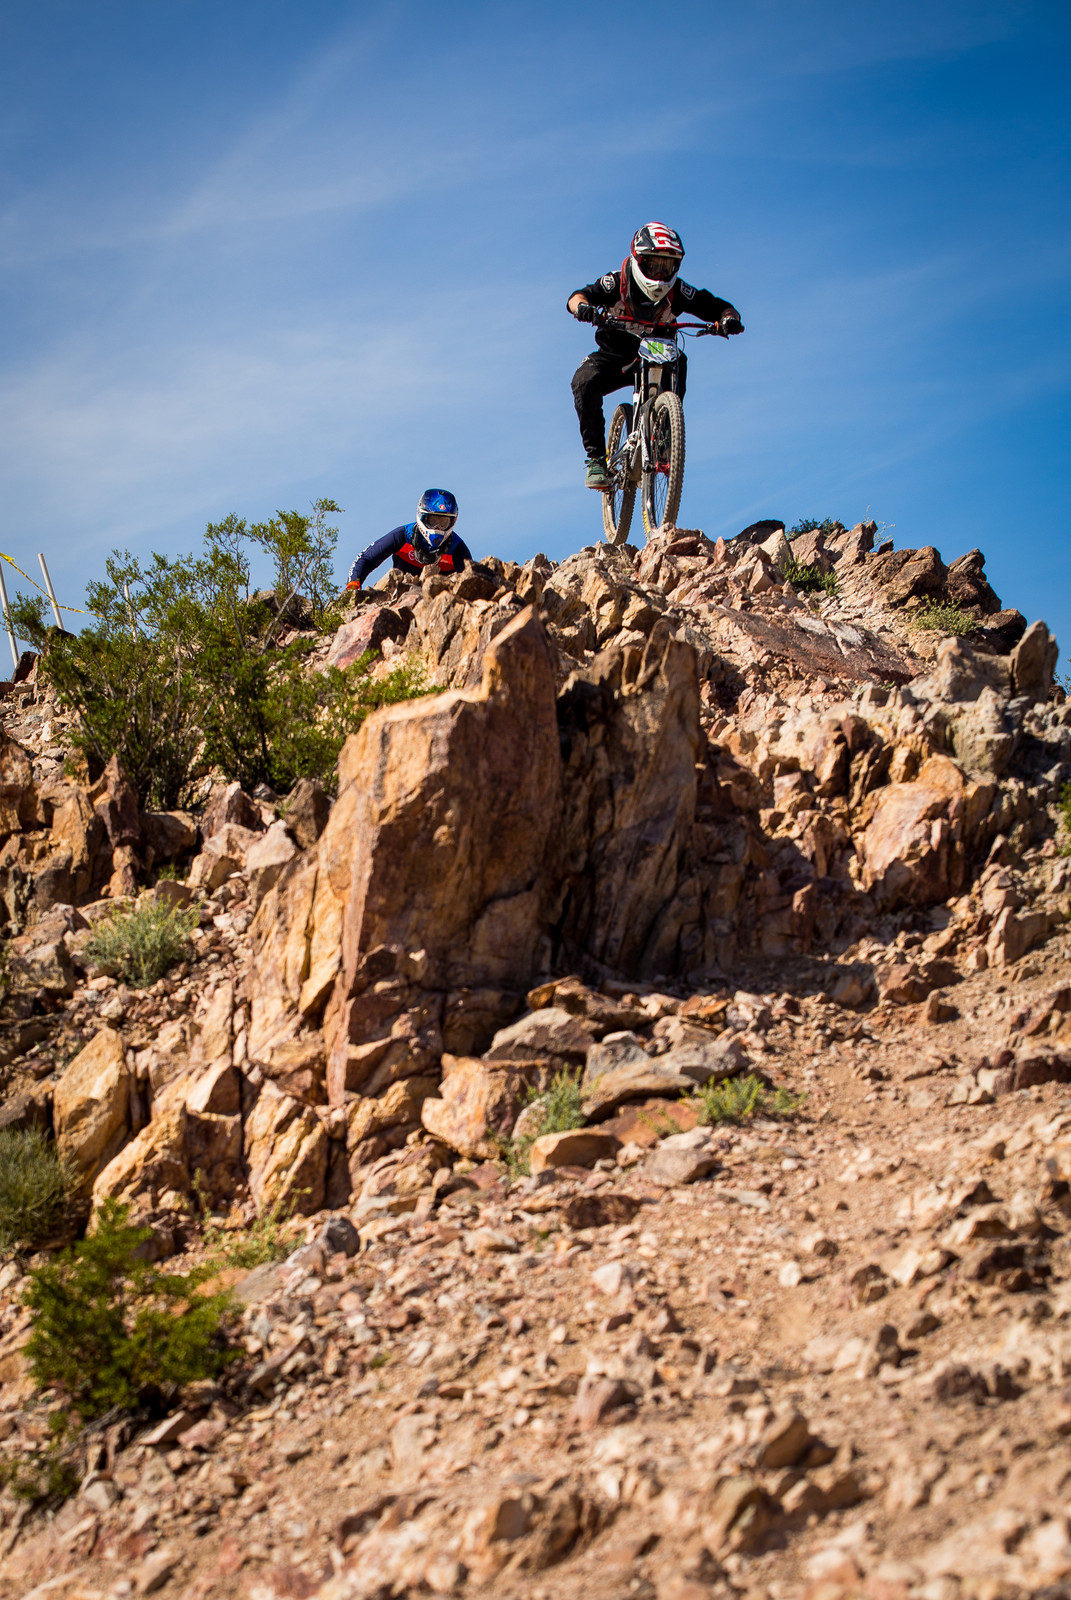 2017 Reaper Madness DH at Bootleg Canyon-3 - 2017 Reaper Madness DH Photos - Mountain Biking Pictures - Vital MTB